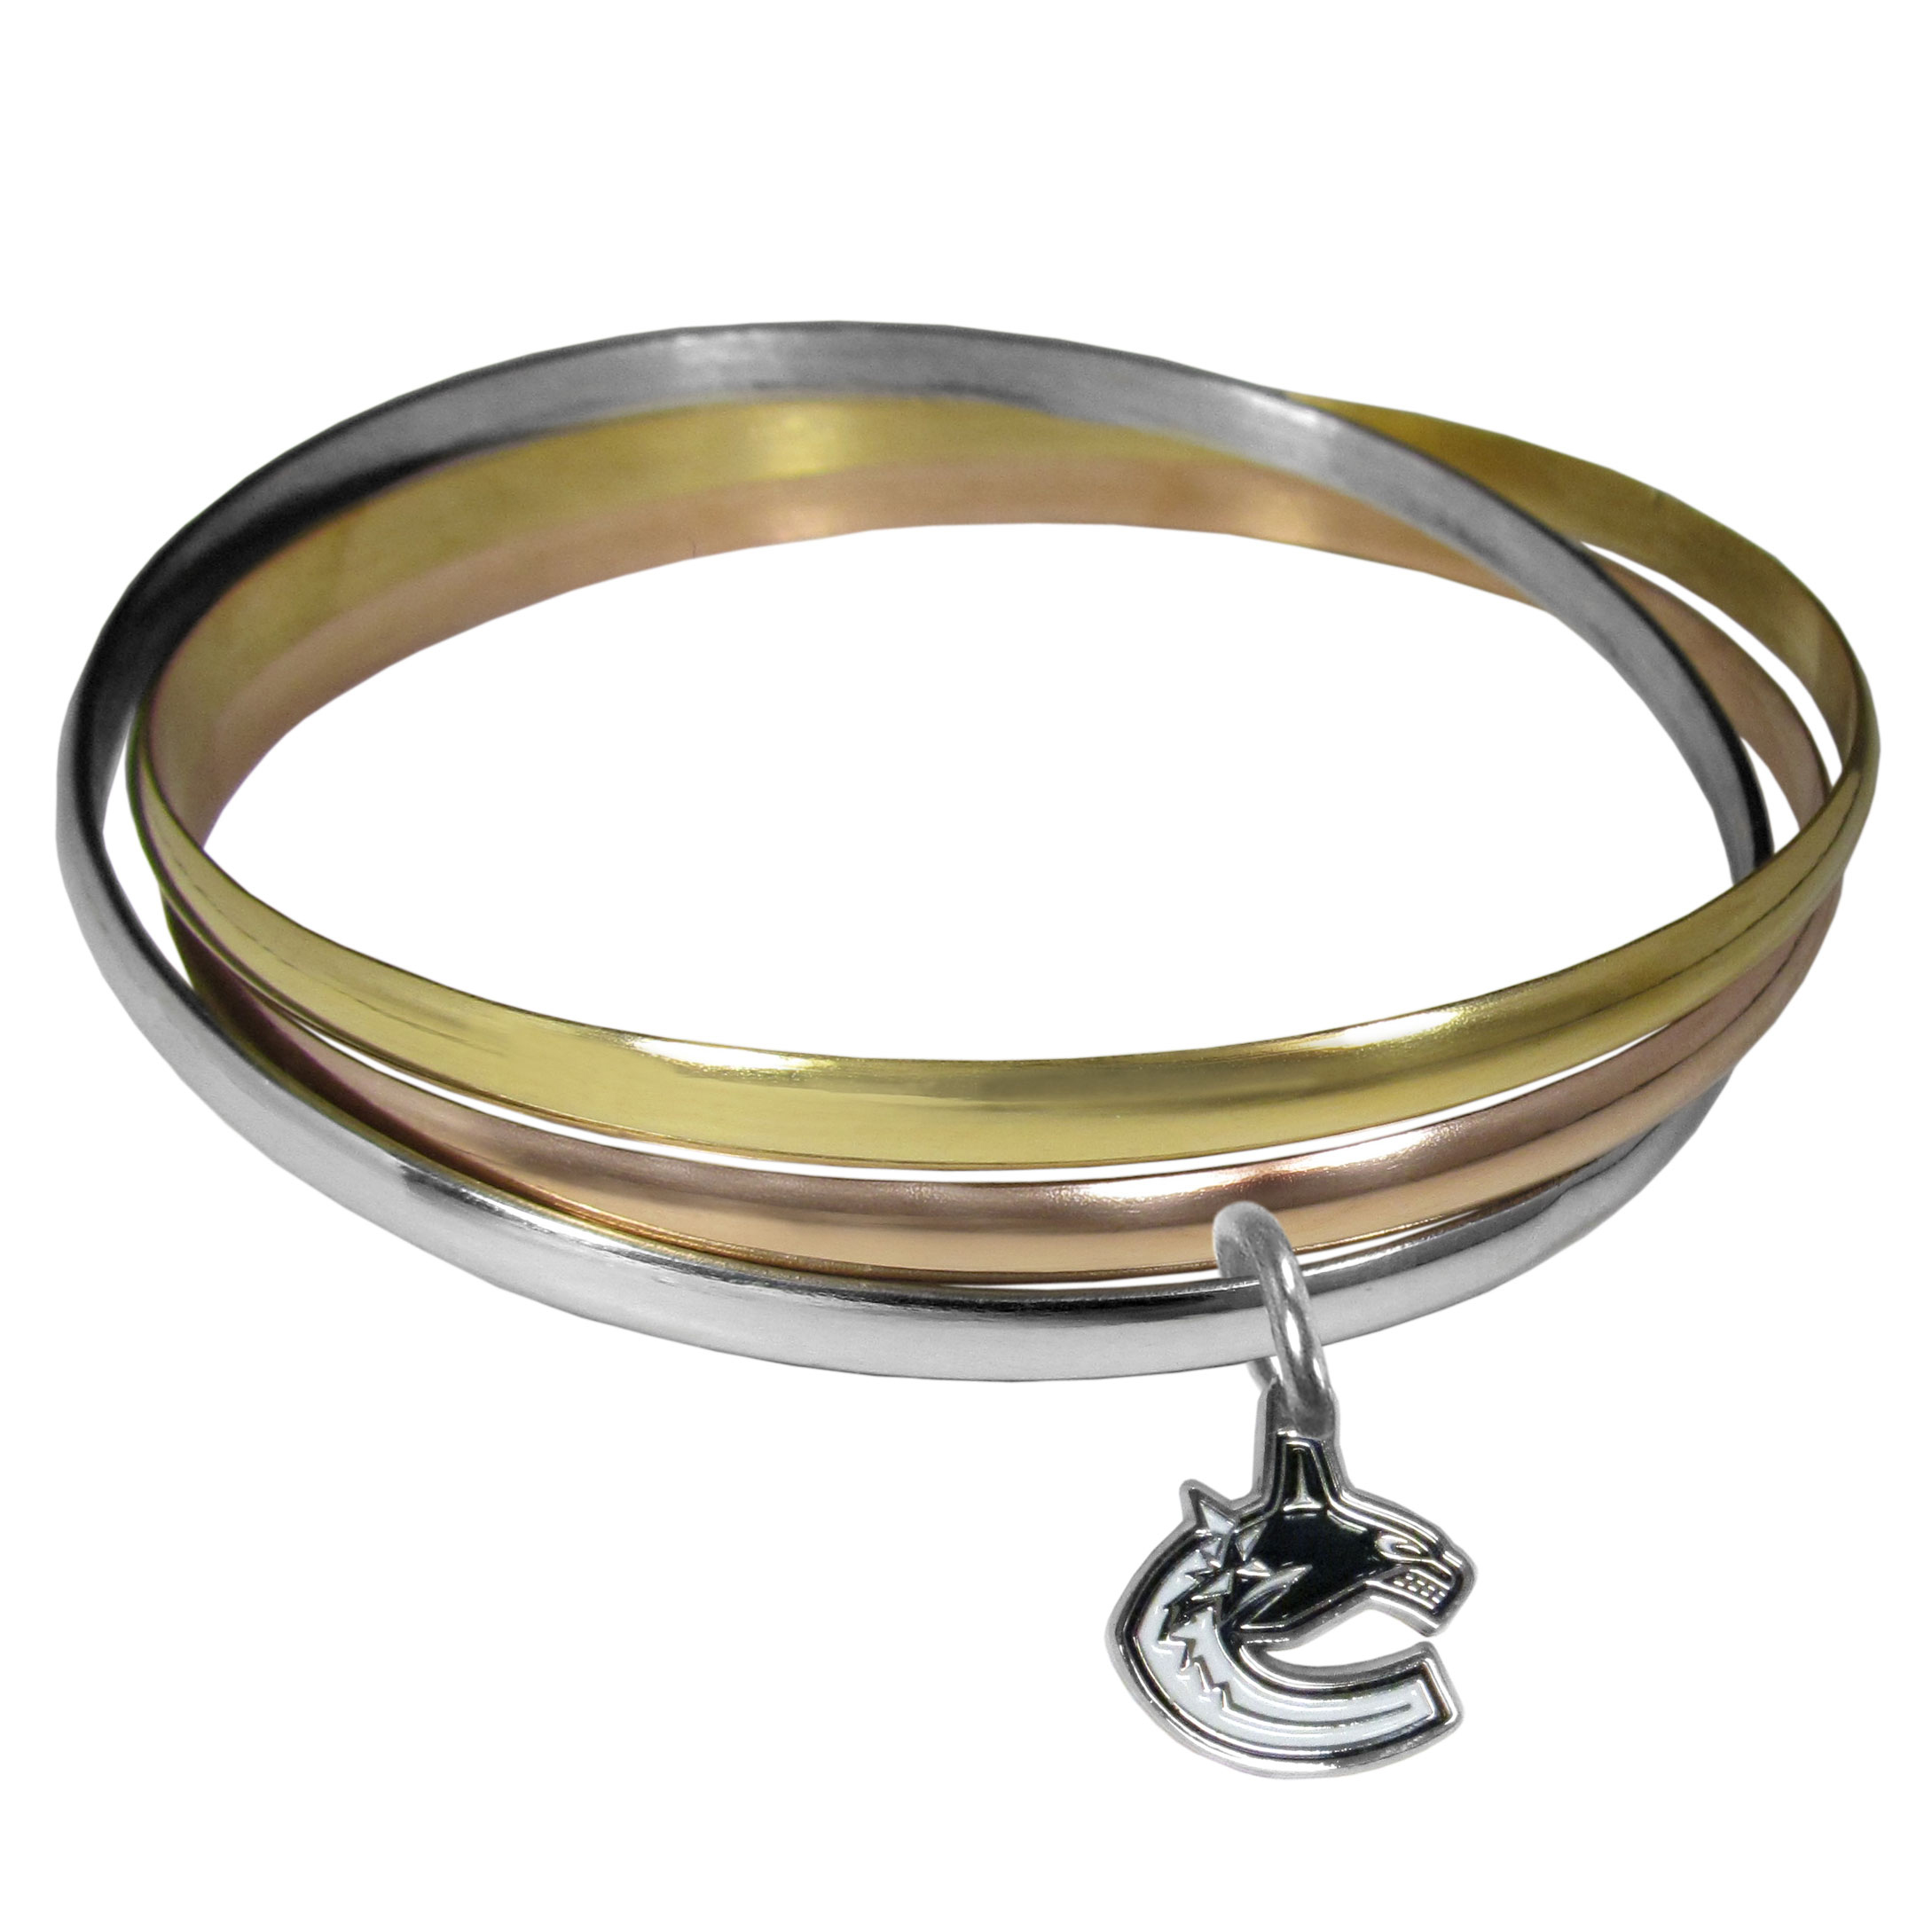 Vancouver Canucks® Tri-color Bangle Bracelet - These beautiful bangles come in a interlocking style and feature a fully cast Vancouver Canucks® charm with enameled team colors. The bracelet has a silver toned bangle, gold tone bangle and brass toned bangle.